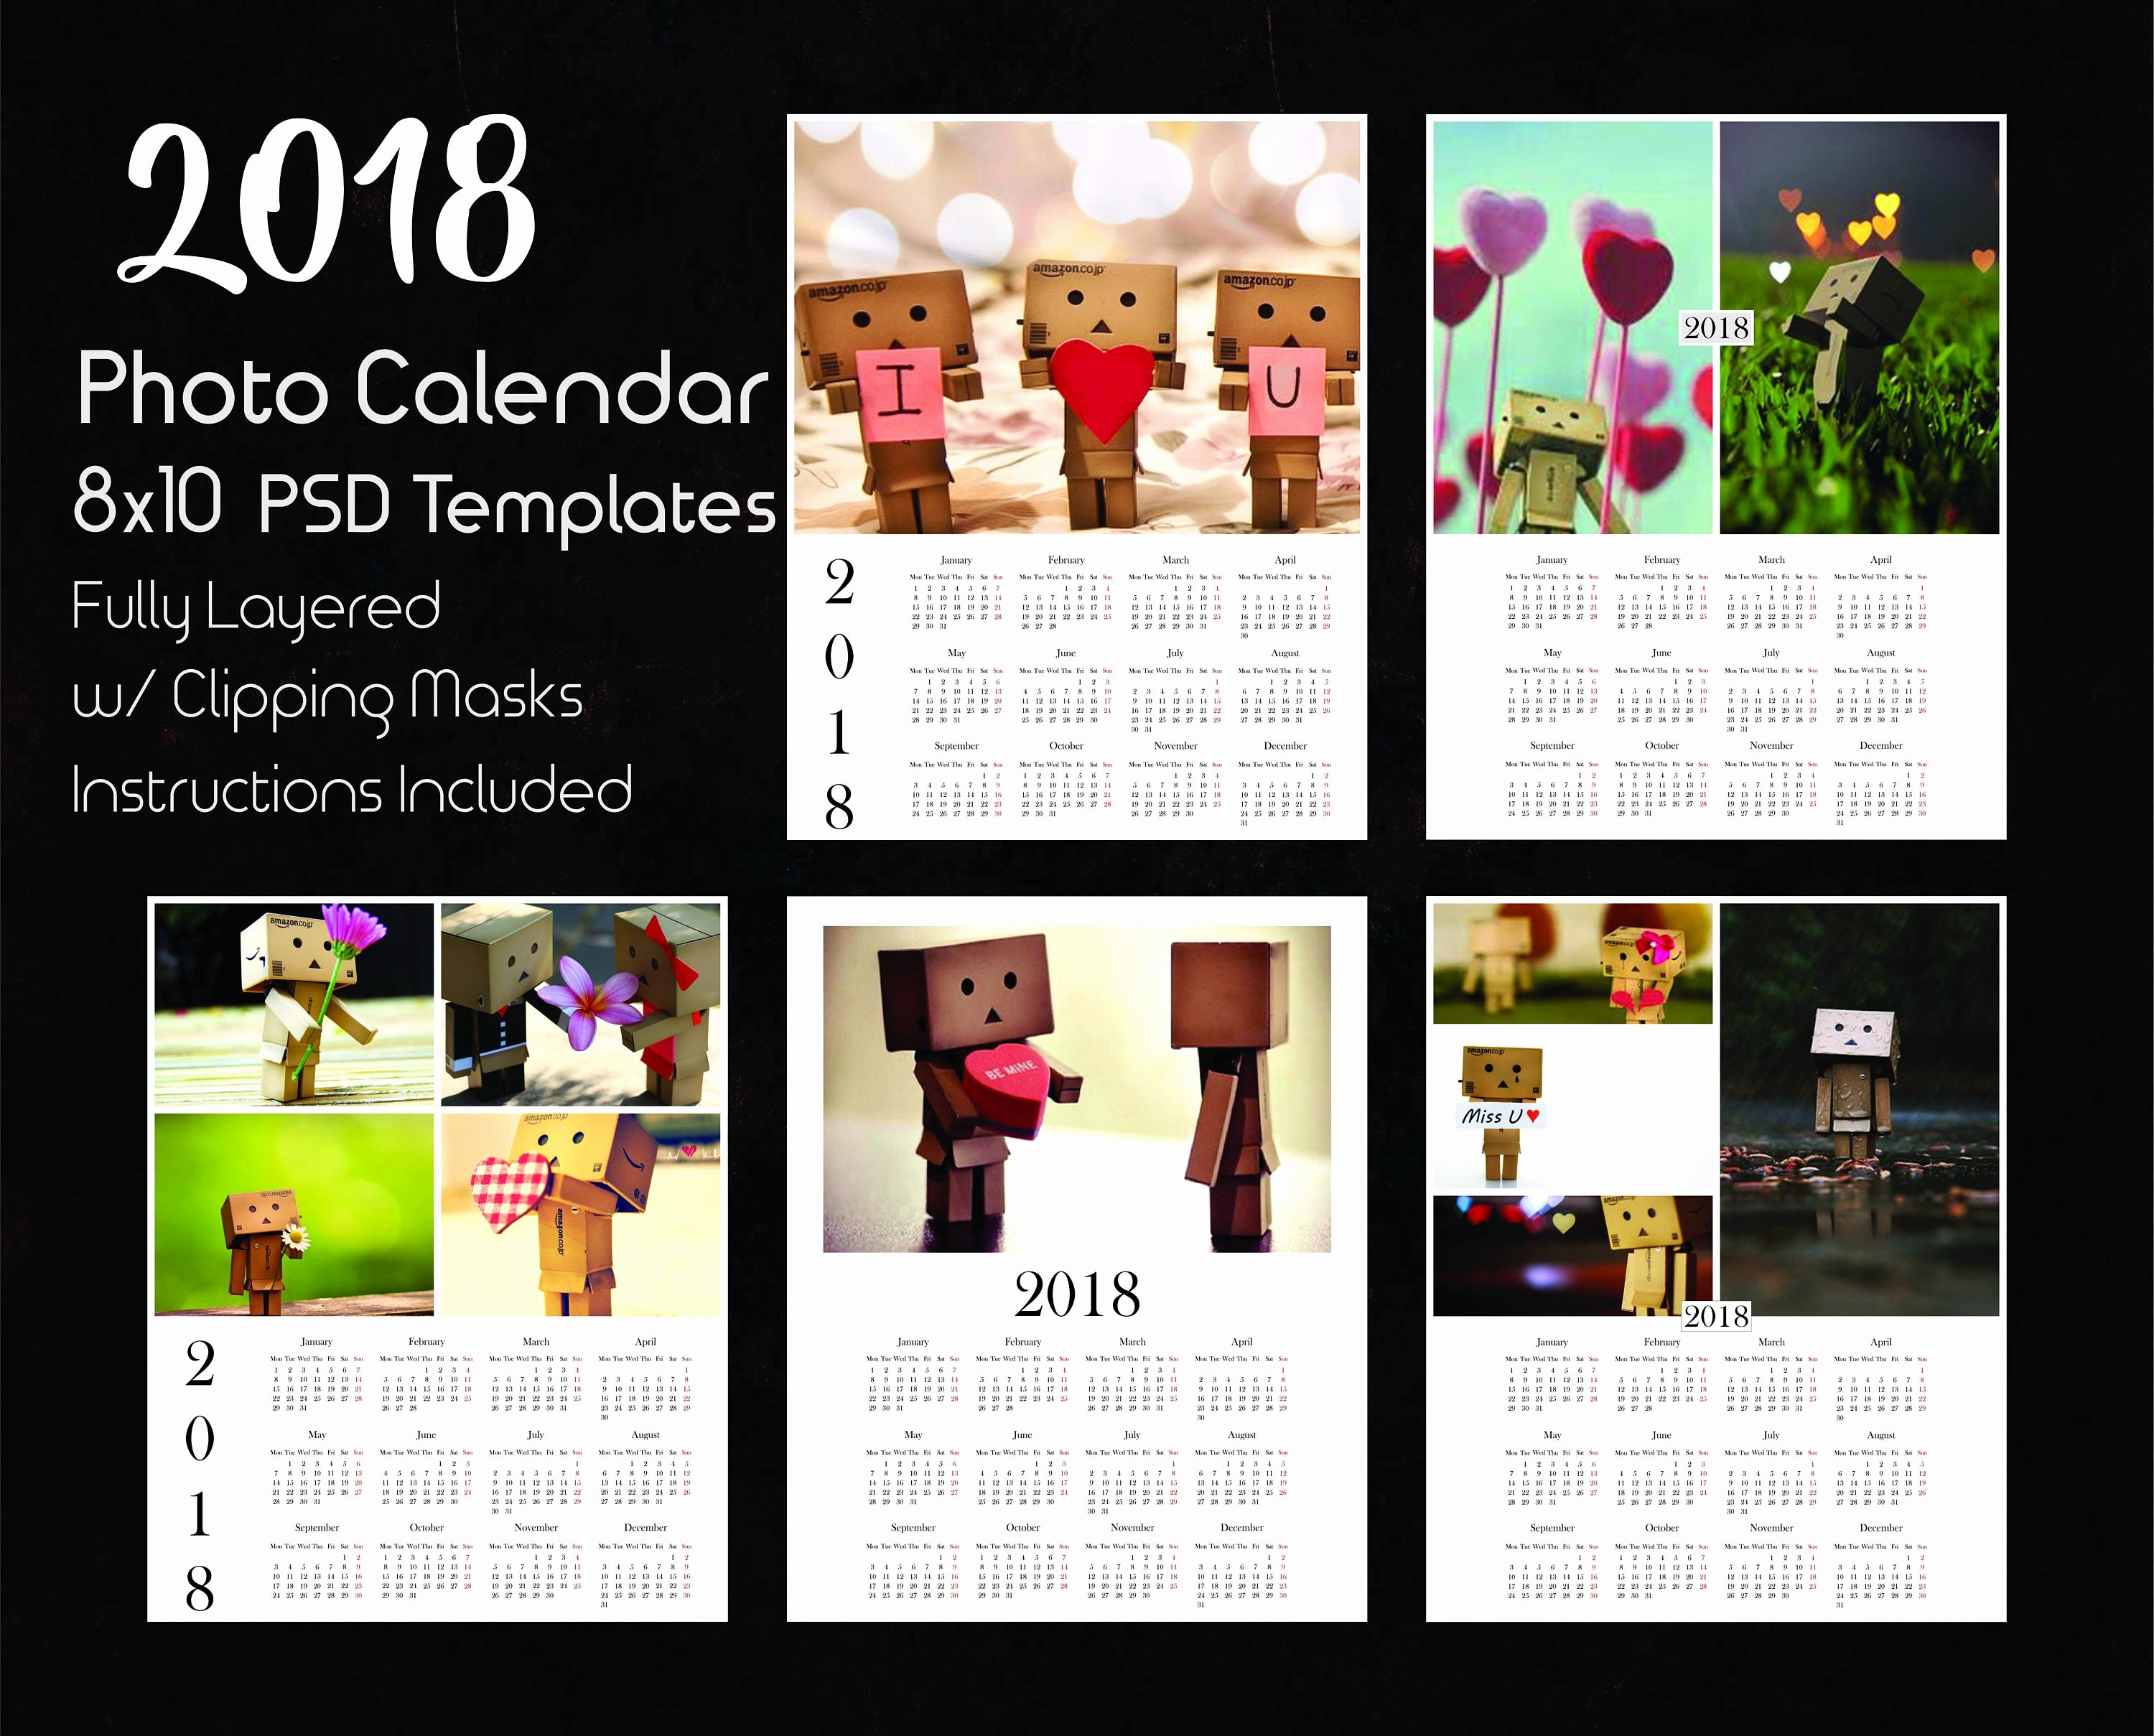 Calendar Template for Photoshop Beautiful 8x10 Calendar Template 2018 5 Psd Templates Shop